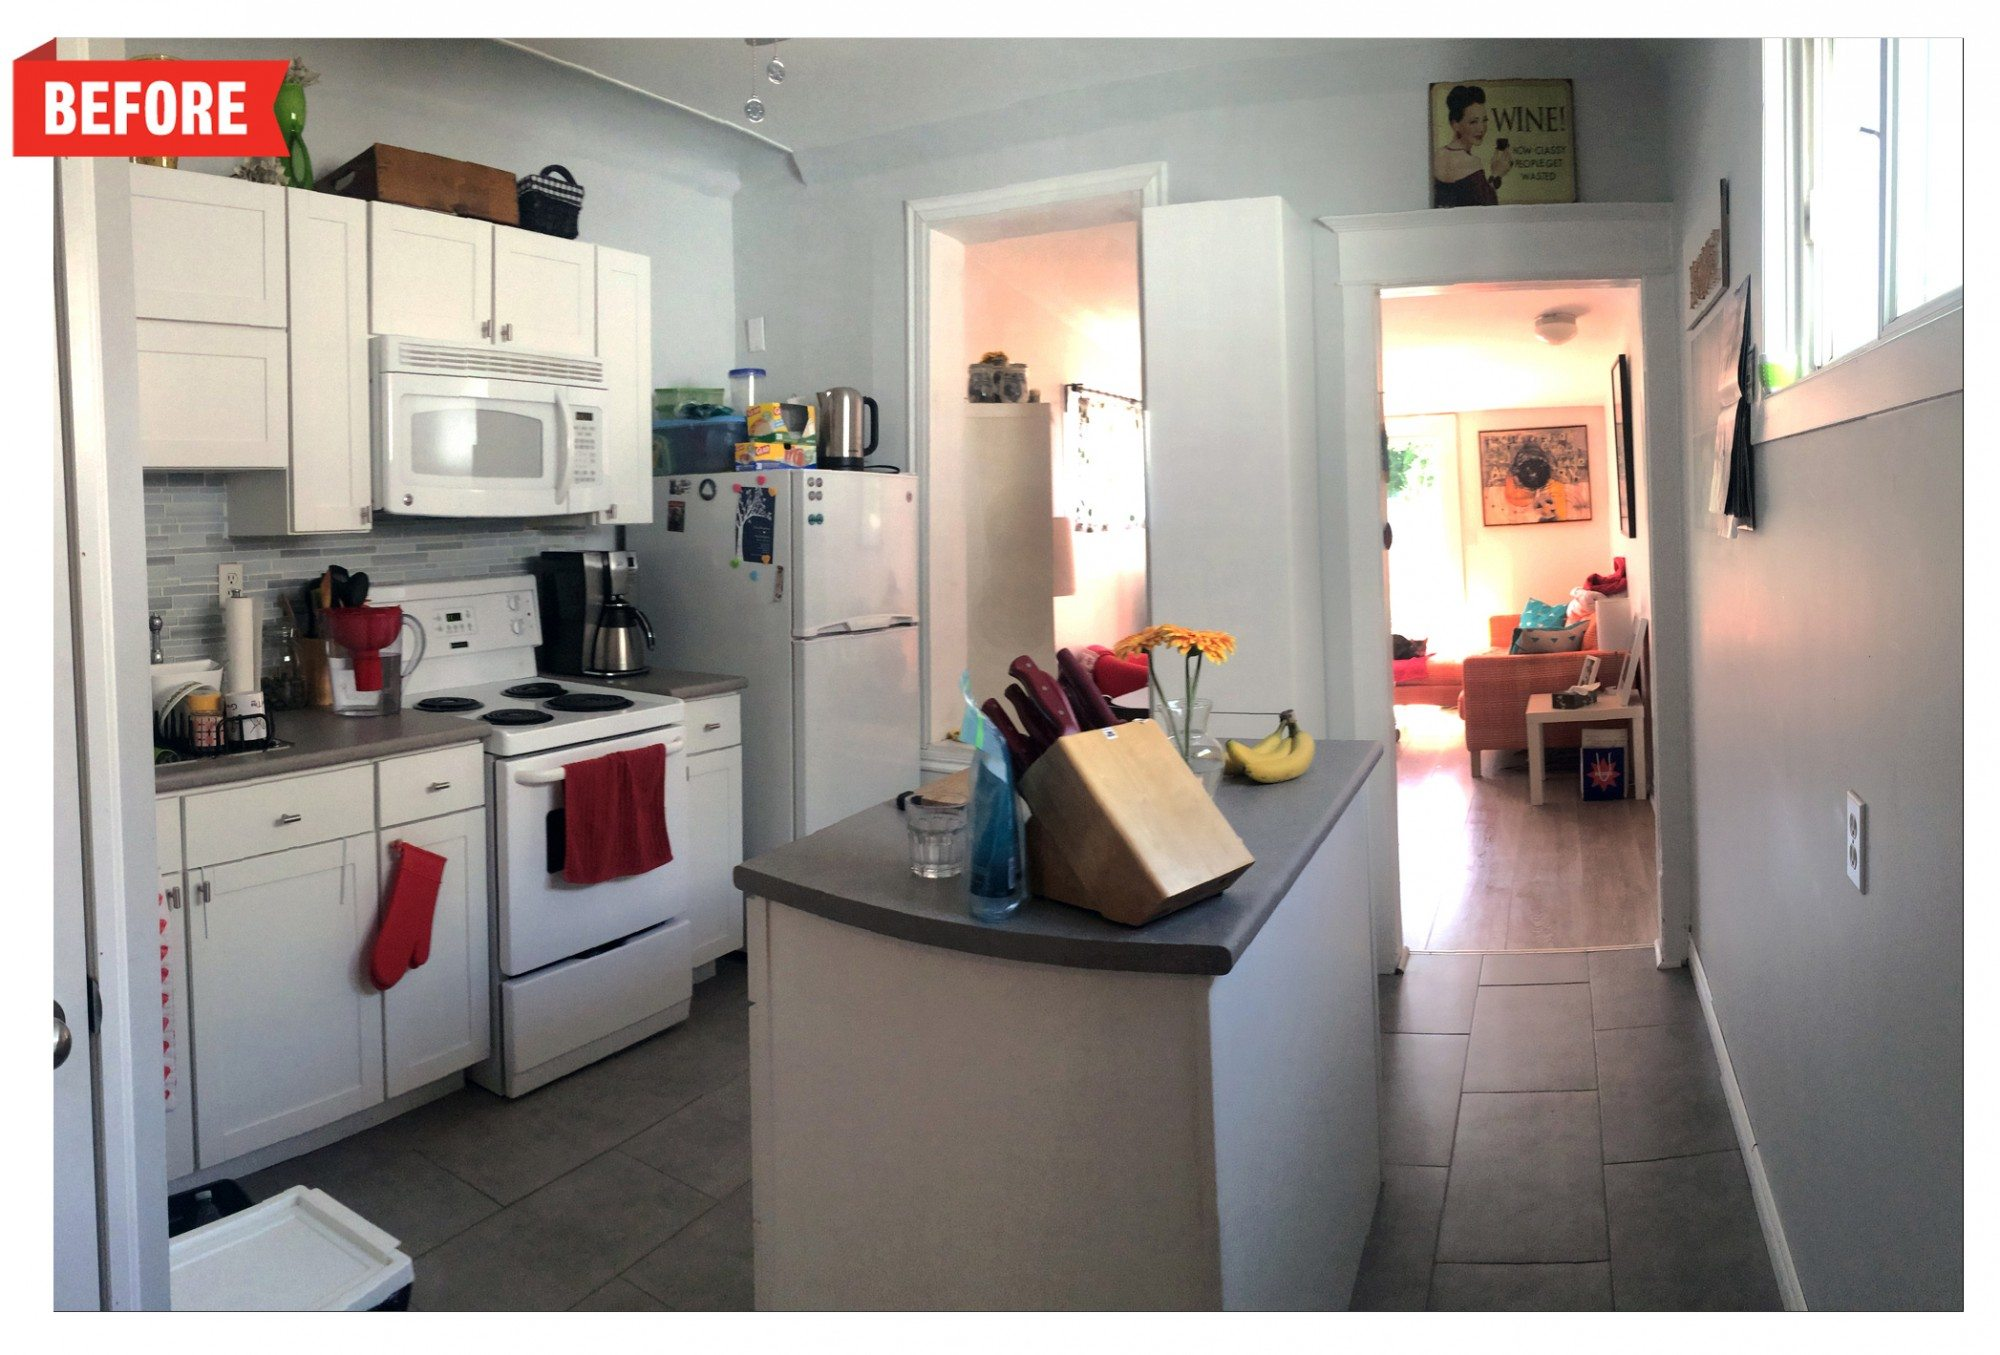 toronto-house-staging-1959-dundas-street-east-kitchen-before